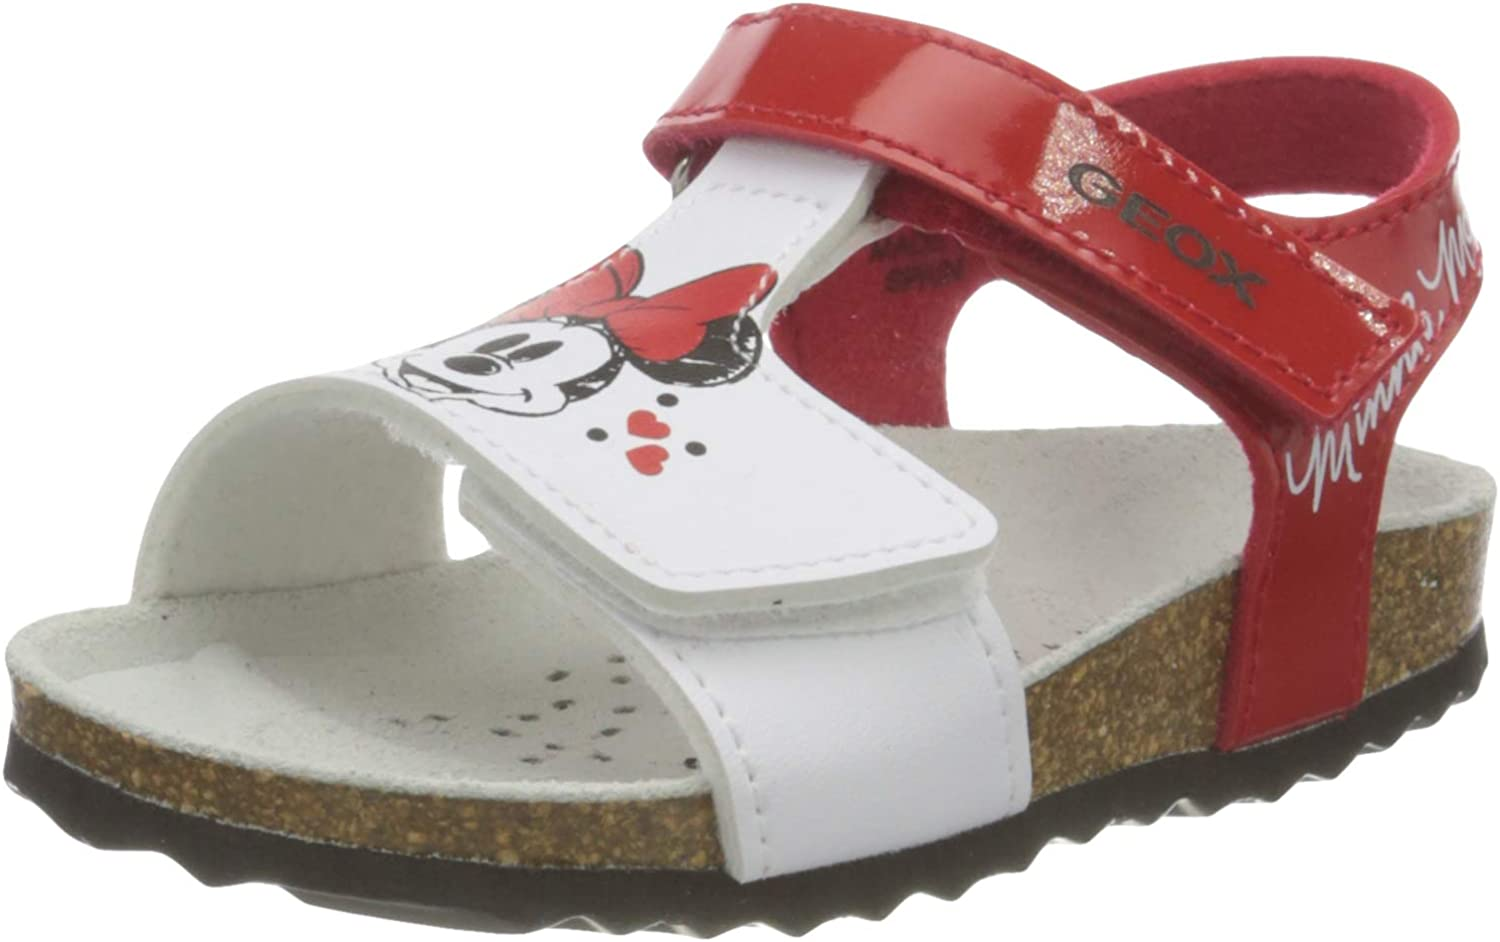 Geox Spring new work one after another Girl's Ankle-Strap Flat White US:5 Red Sandal Shipping included